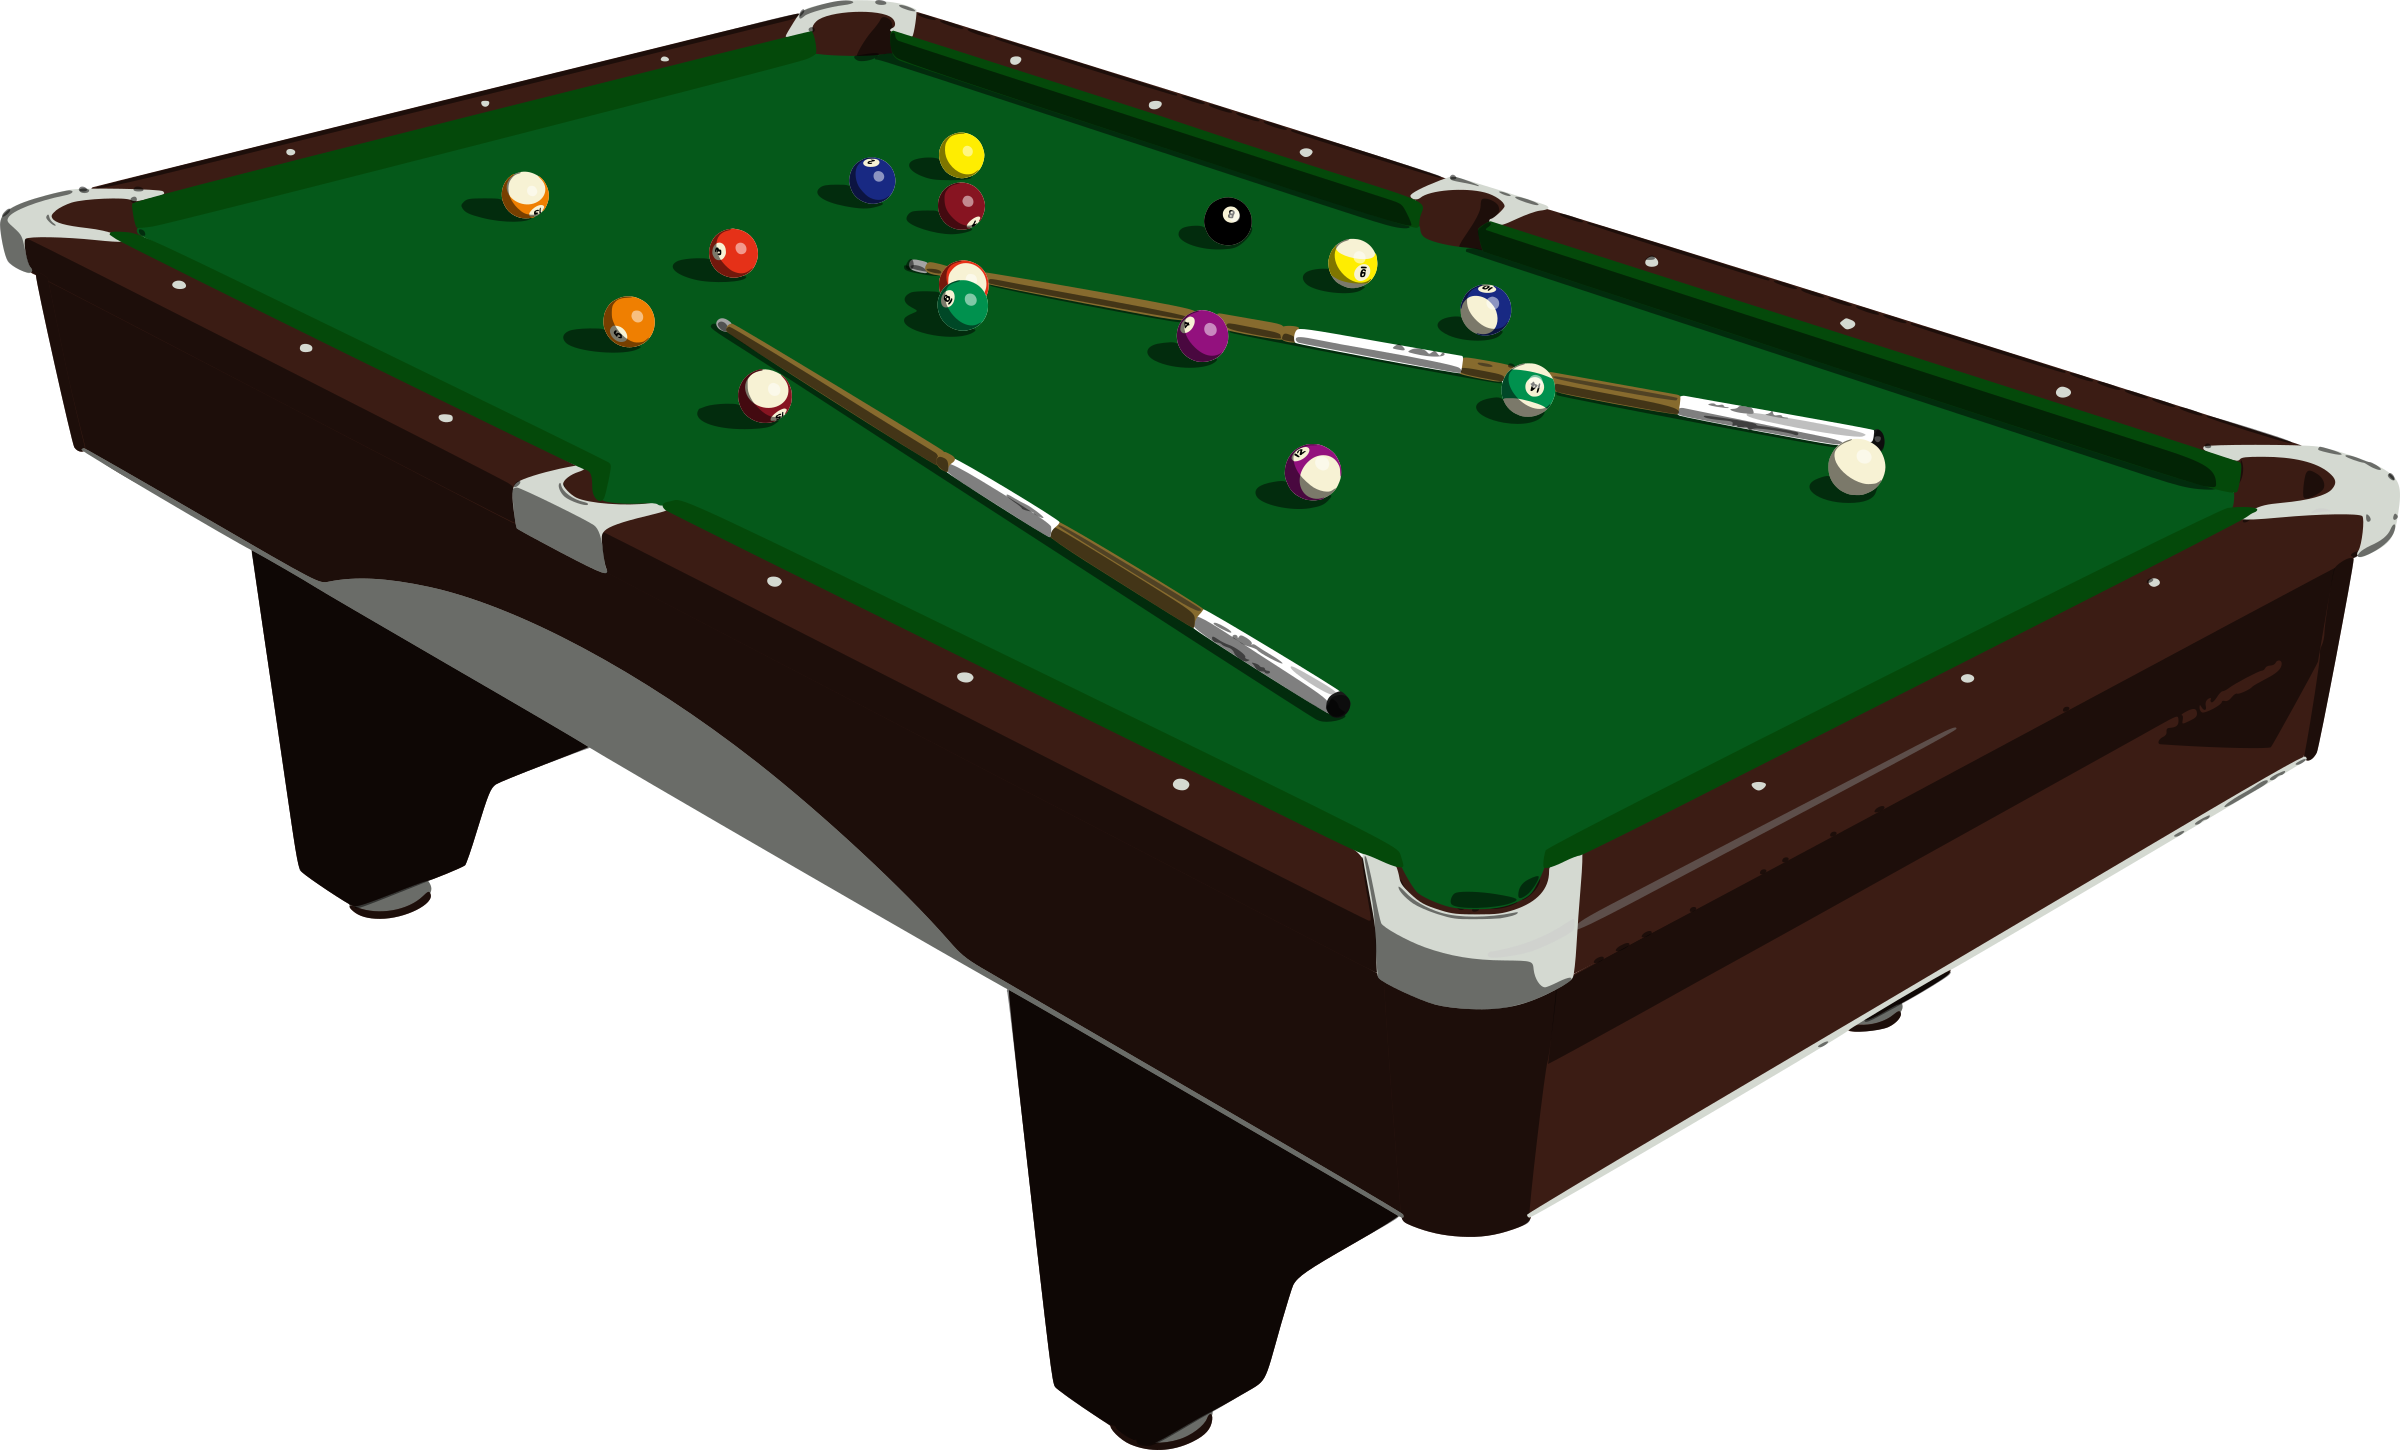 Free pool games clipart clip art royalty free Pool Game PNG Images Transparent Free Download | PNGMart.com clip art royalty free